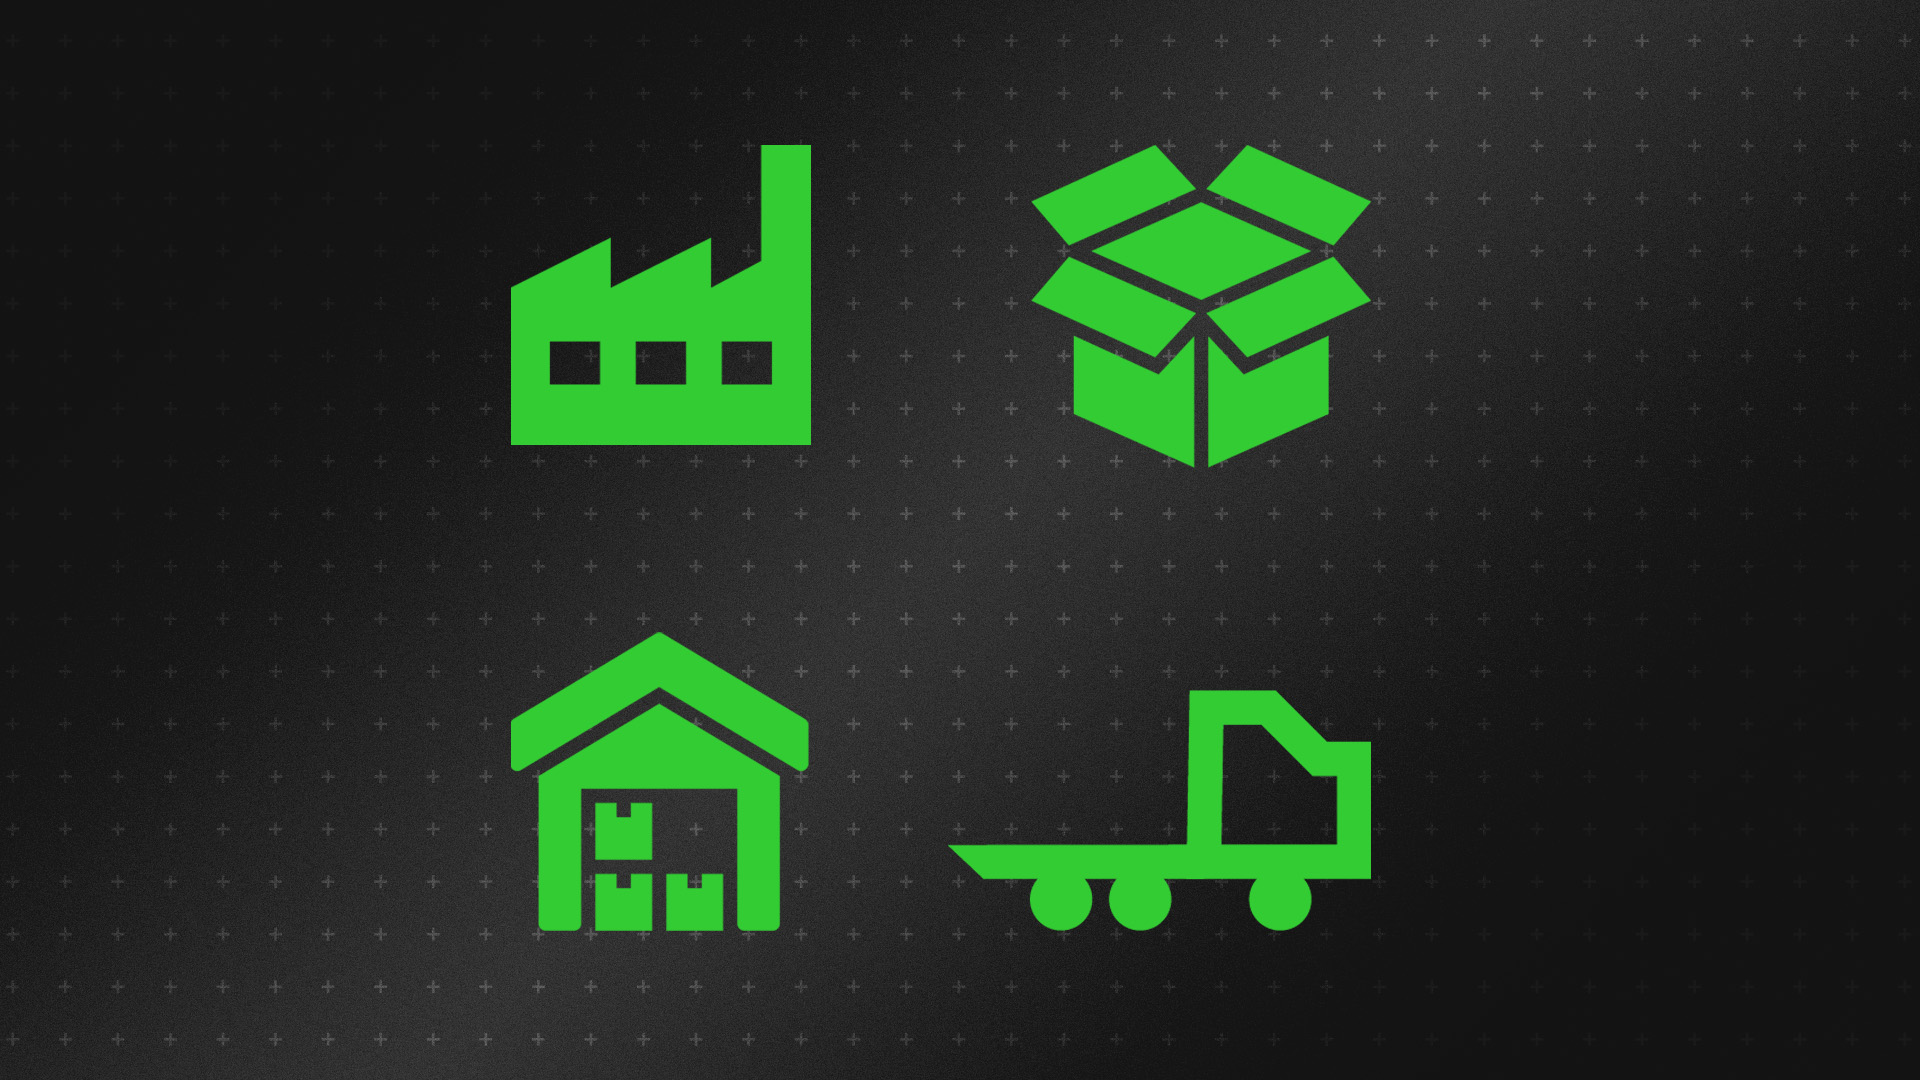 Icons depicting warehousing, transportation, manufacturing and procurement